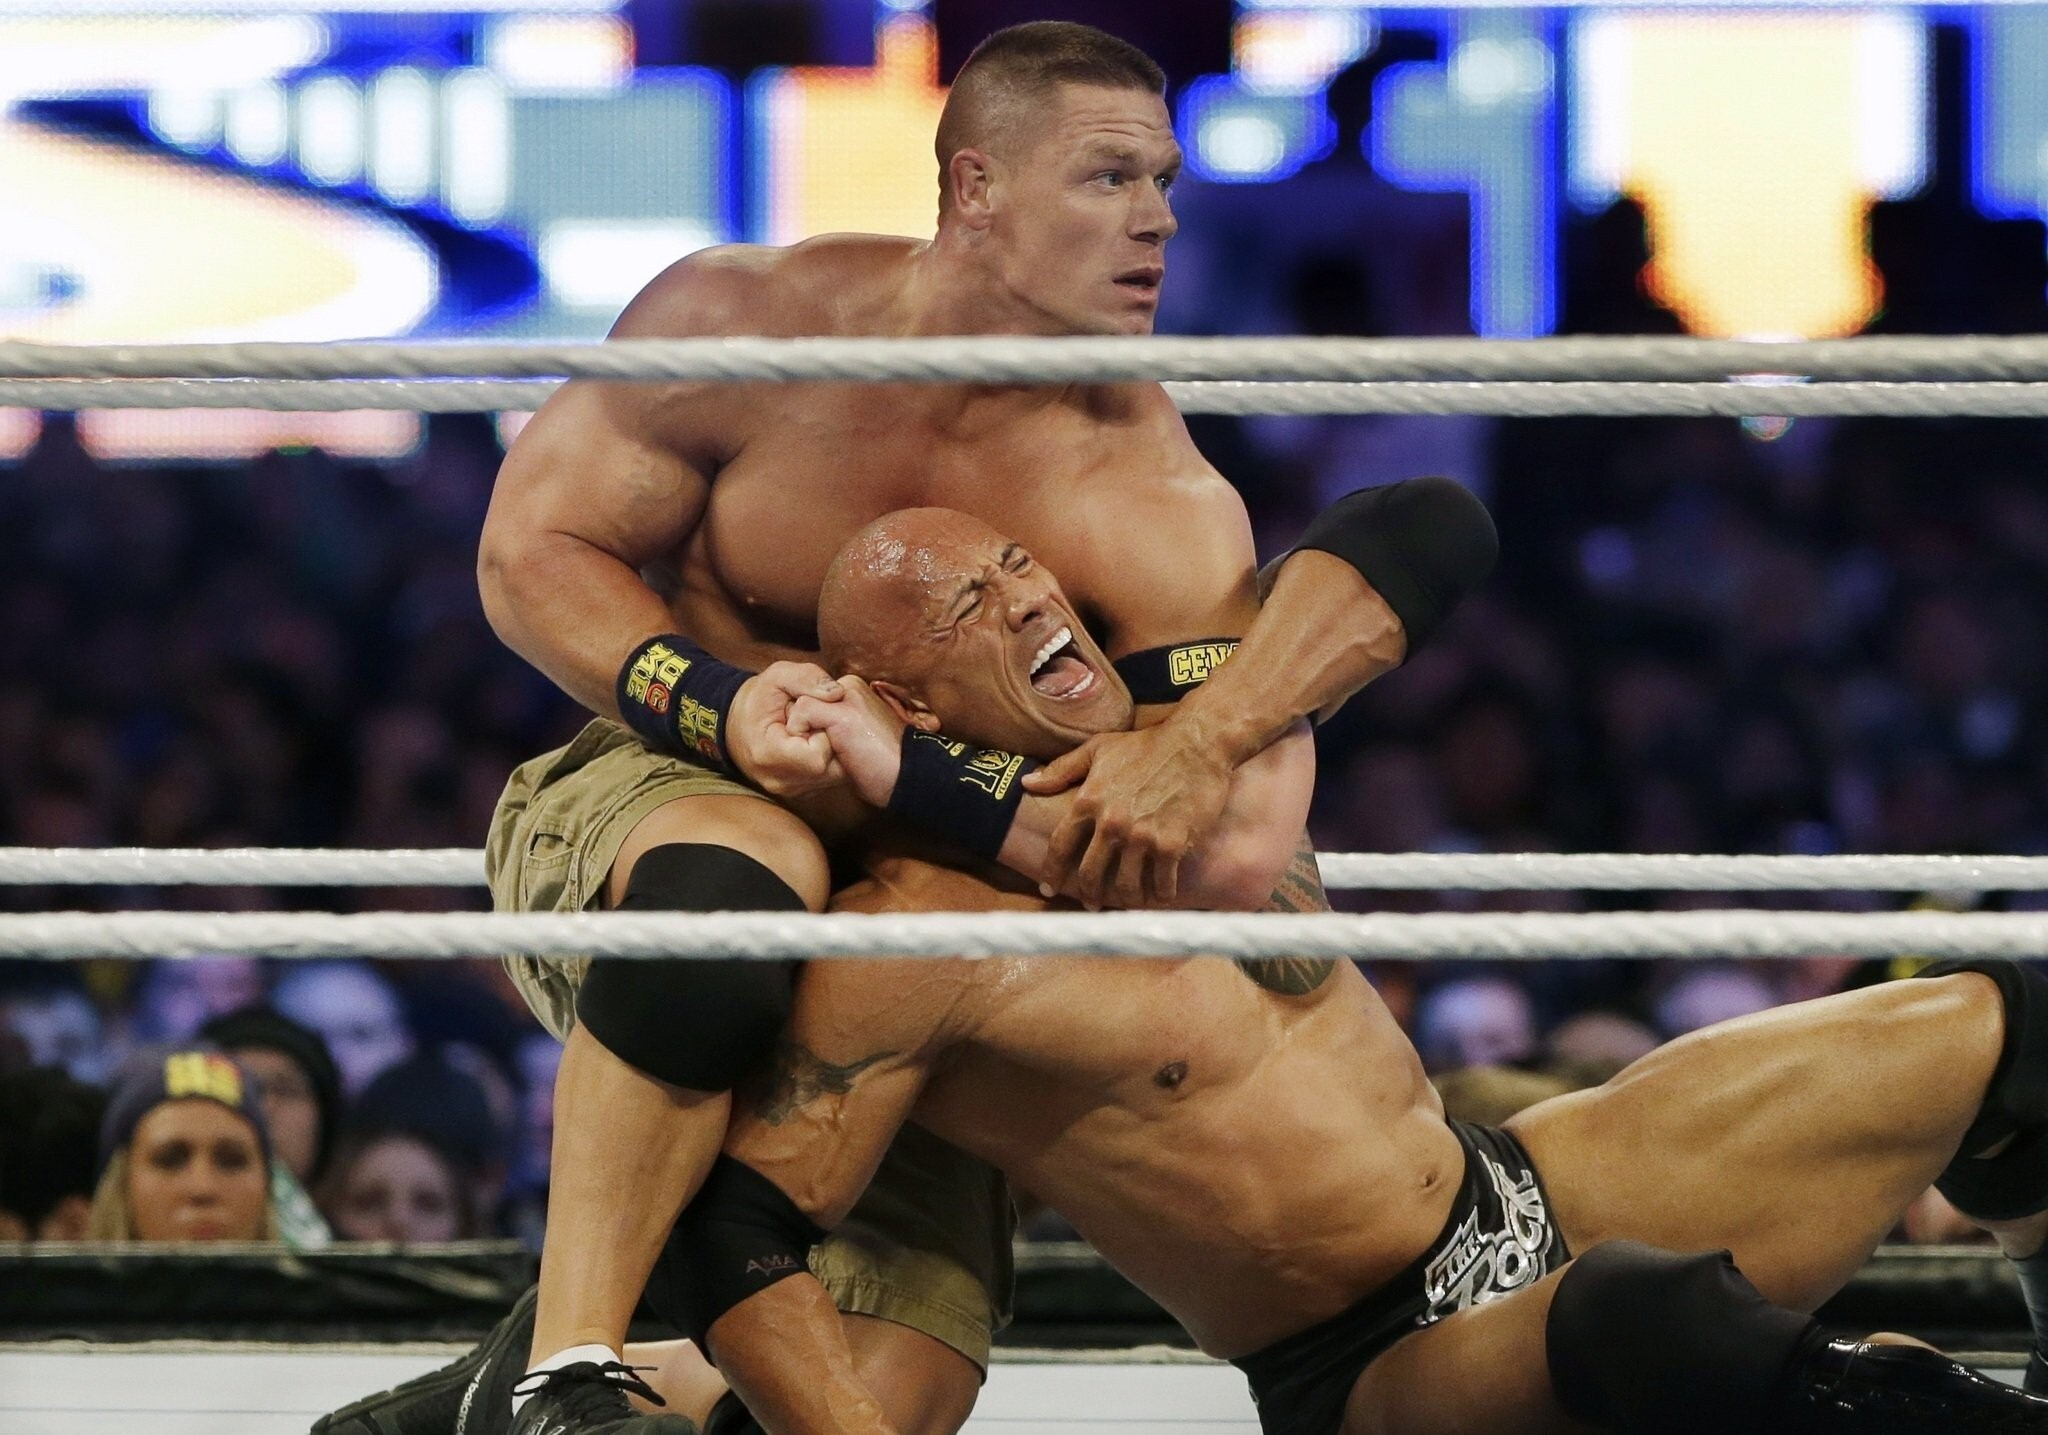 John Cena Fight With Rock In Wrestlemania 29 Hd Wallpapers